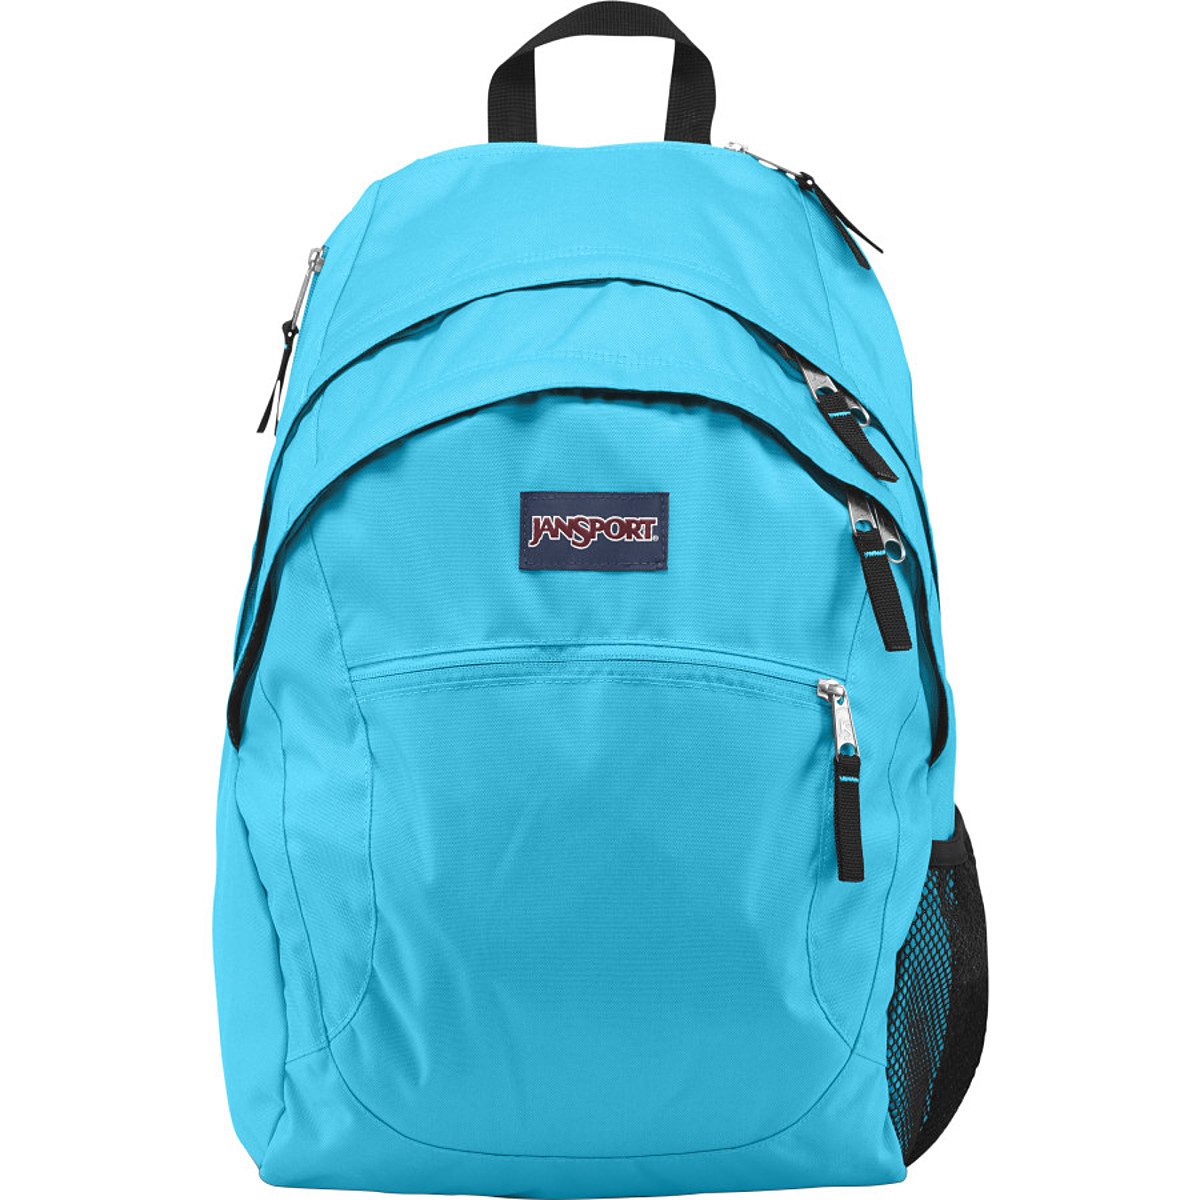 JanSport Wasabi